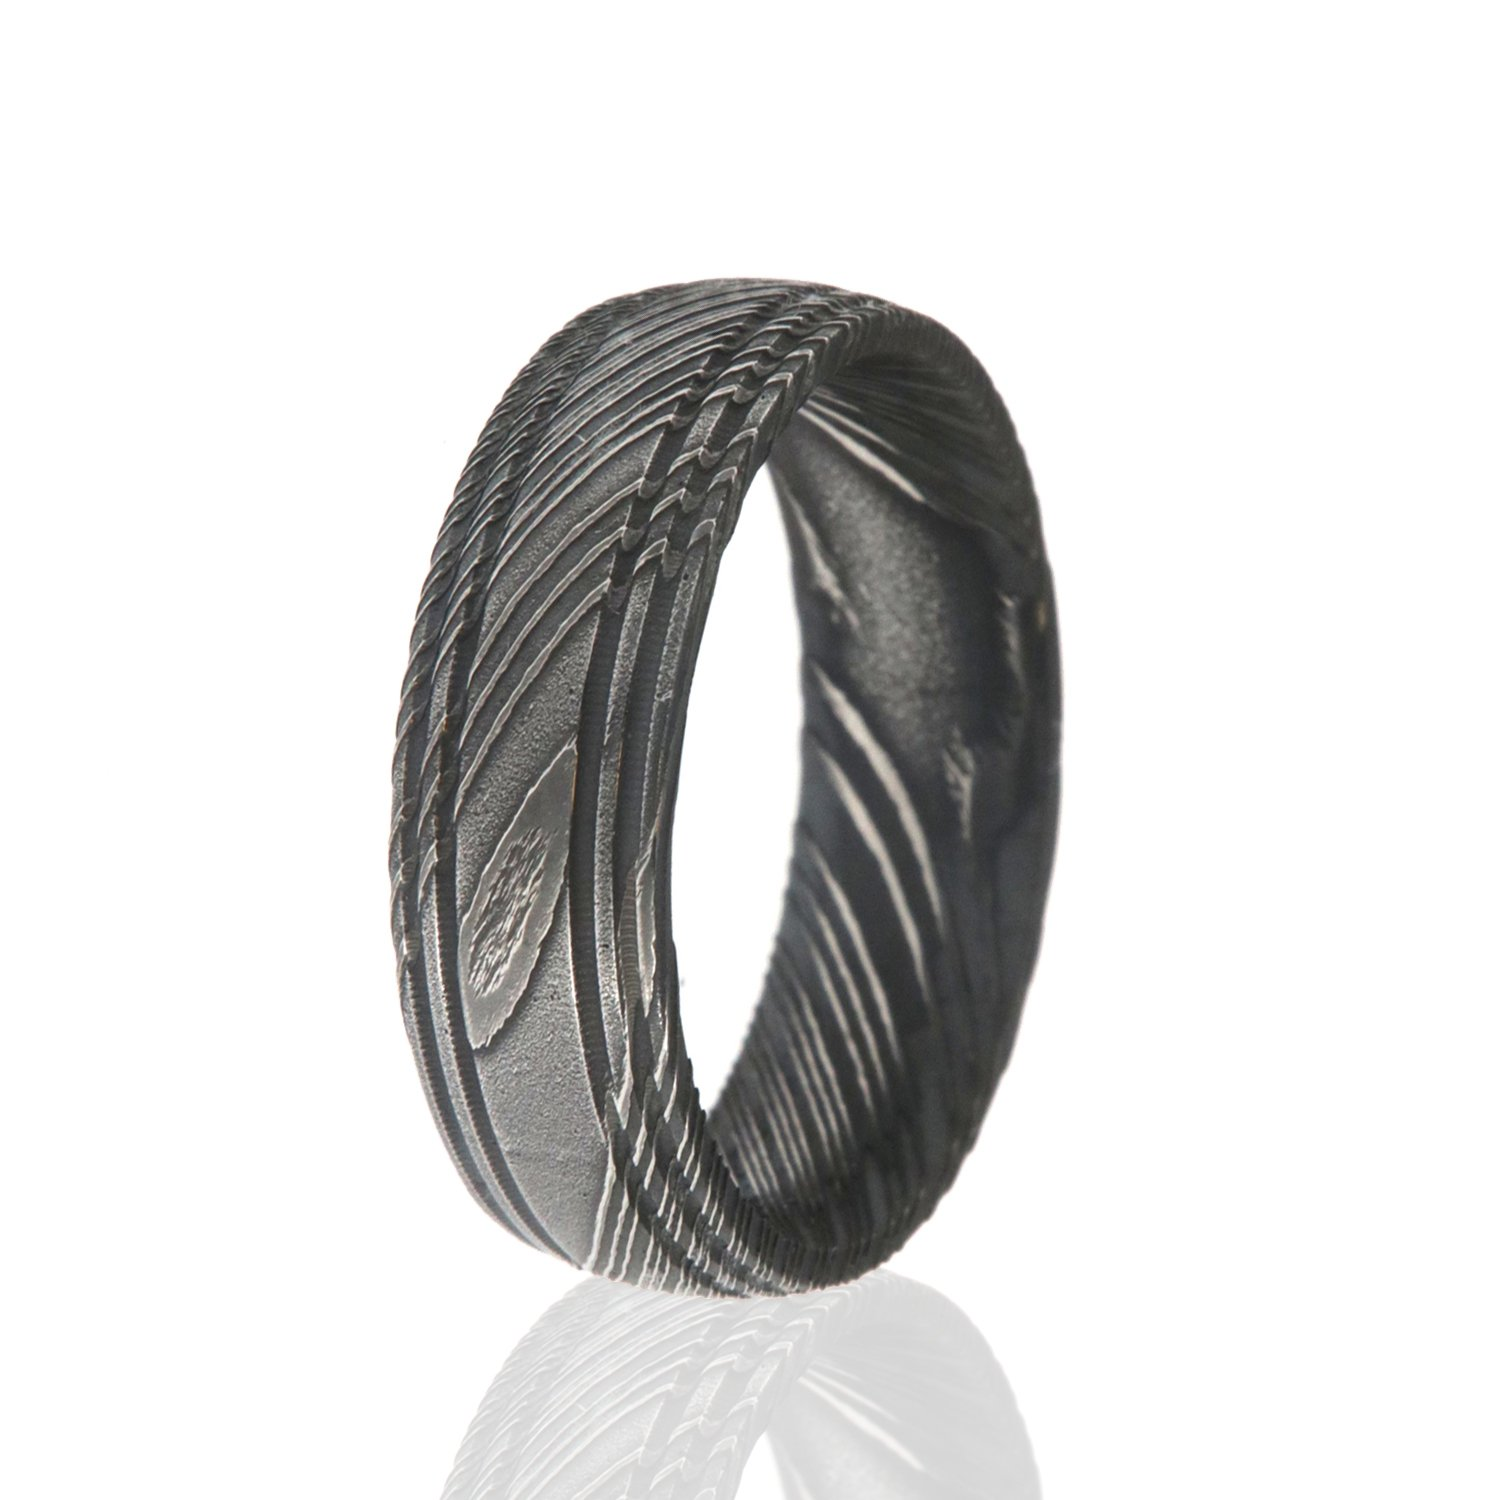 black for des blue nibelungen ring rings wedding steel band products stainless eejart fiber dragon carbon